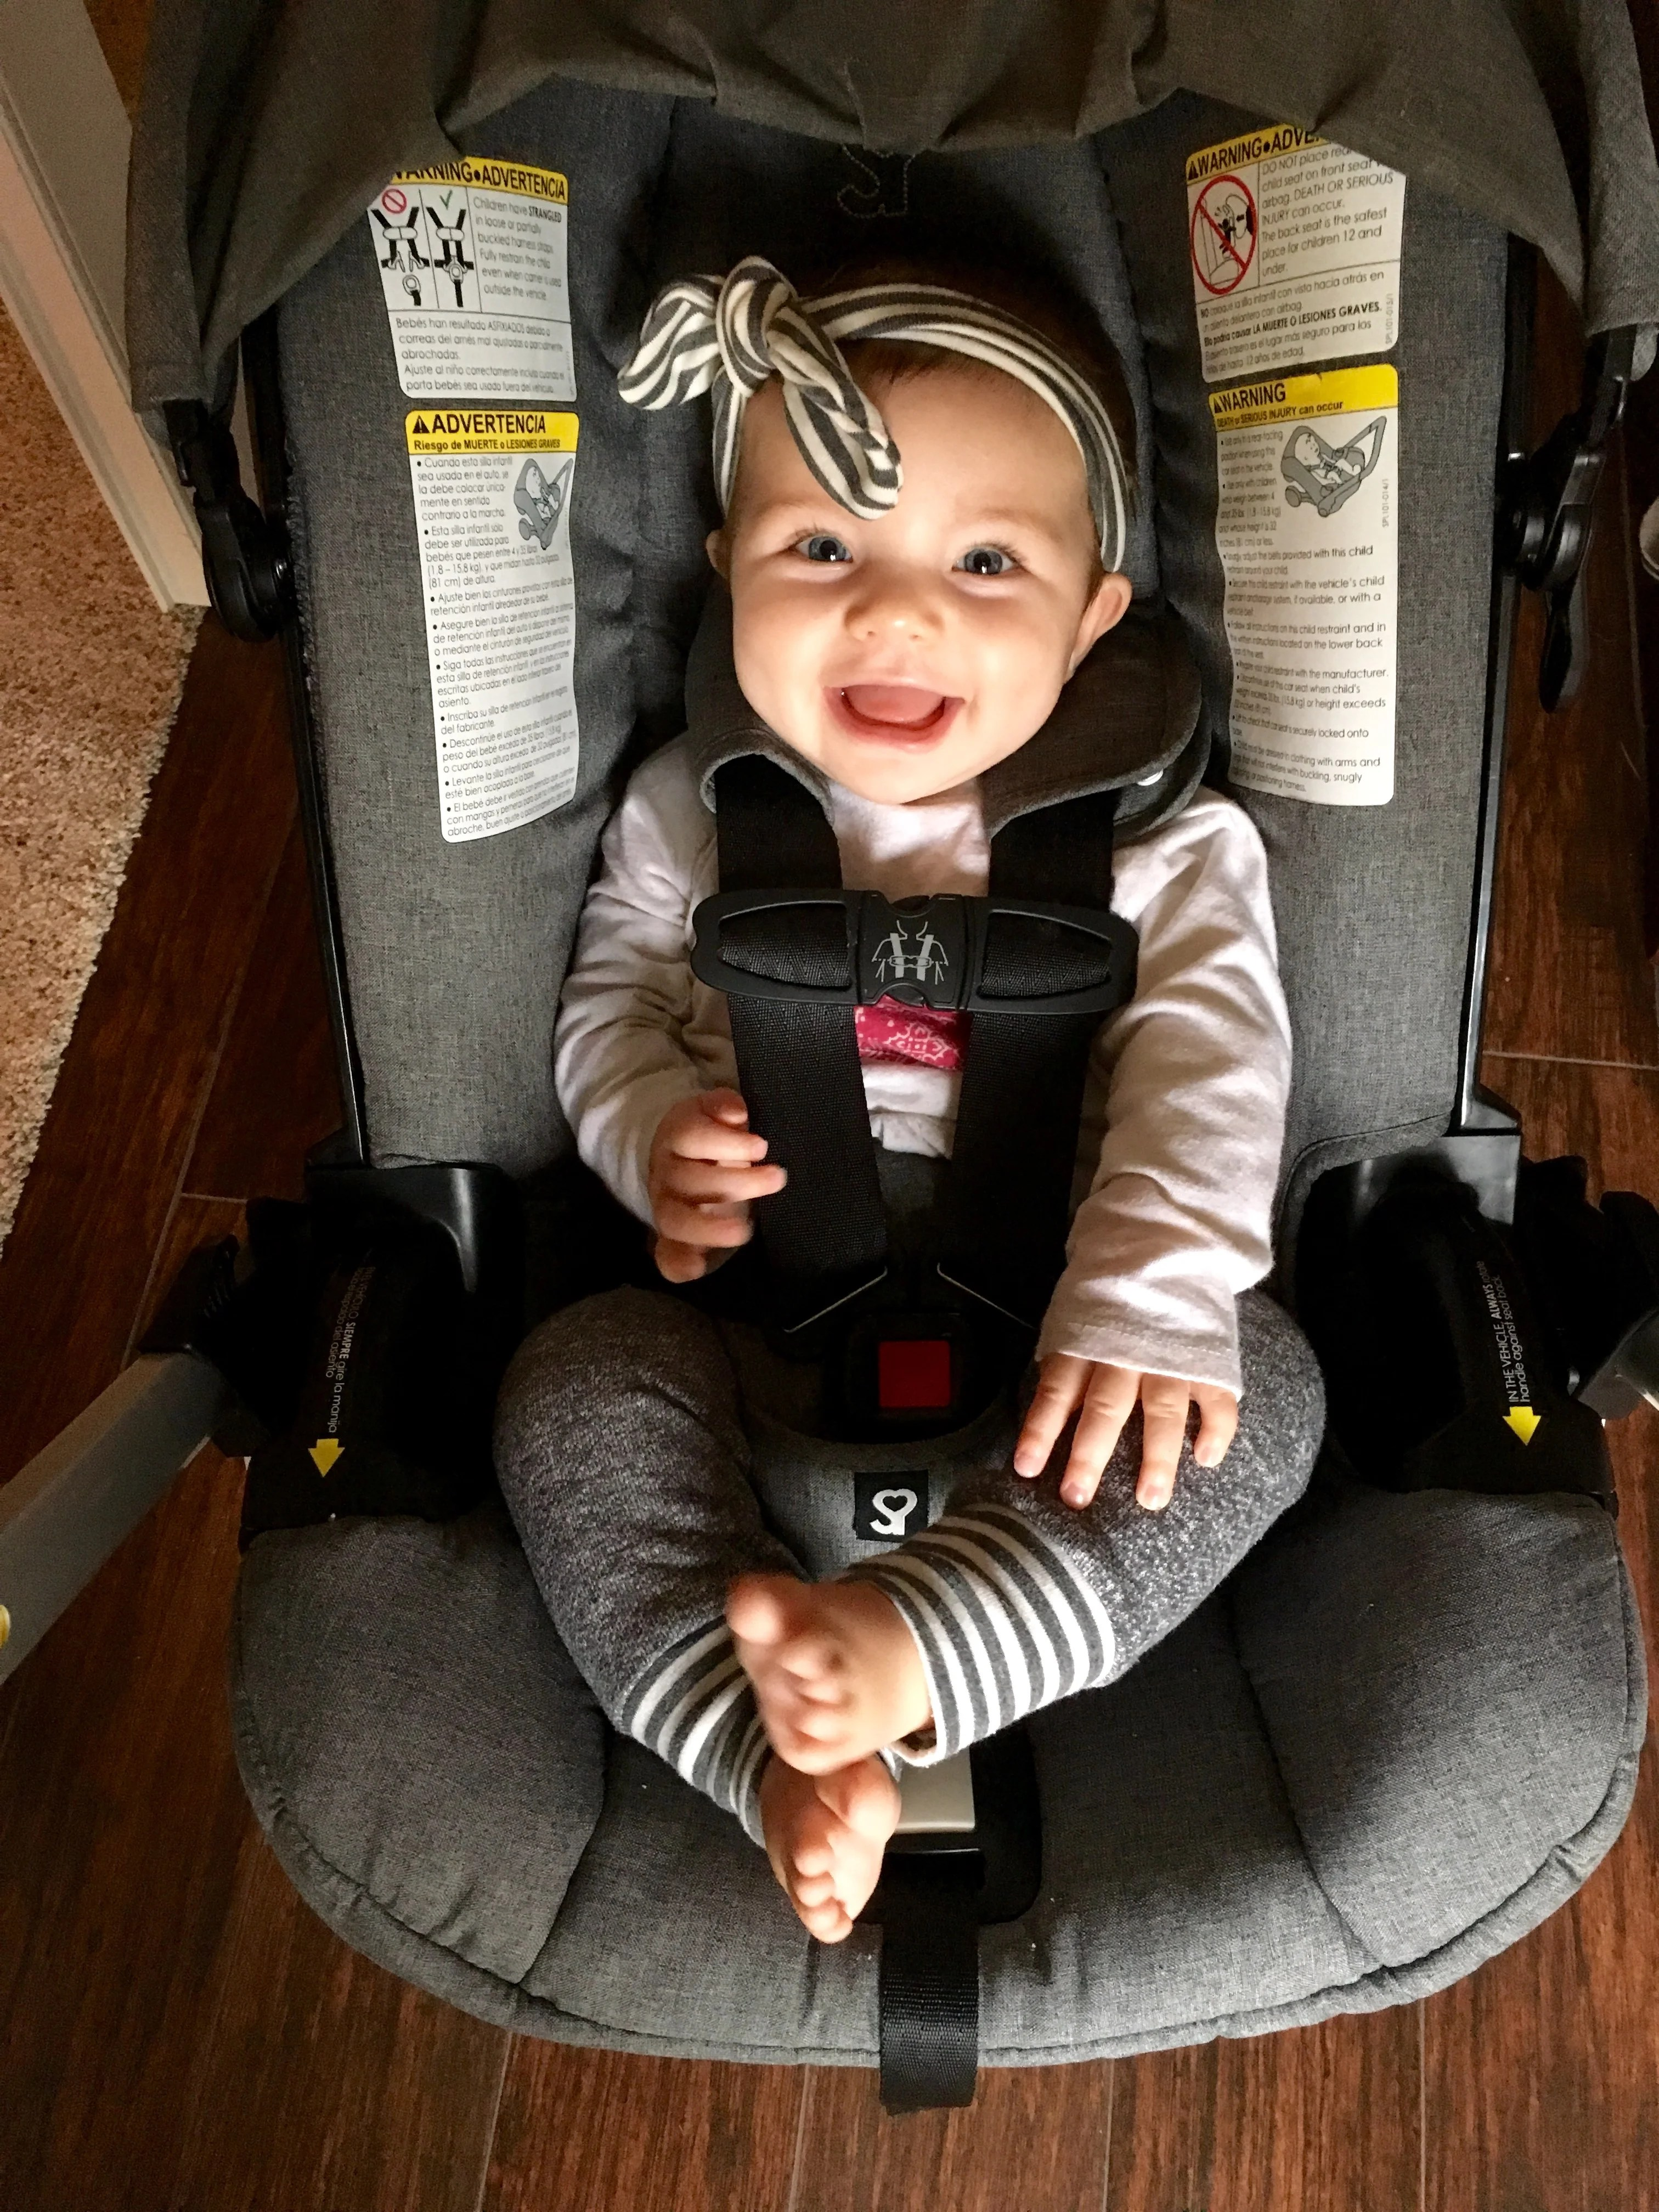 The Doona Infant Car Seat Stroller Review - The Points Guy